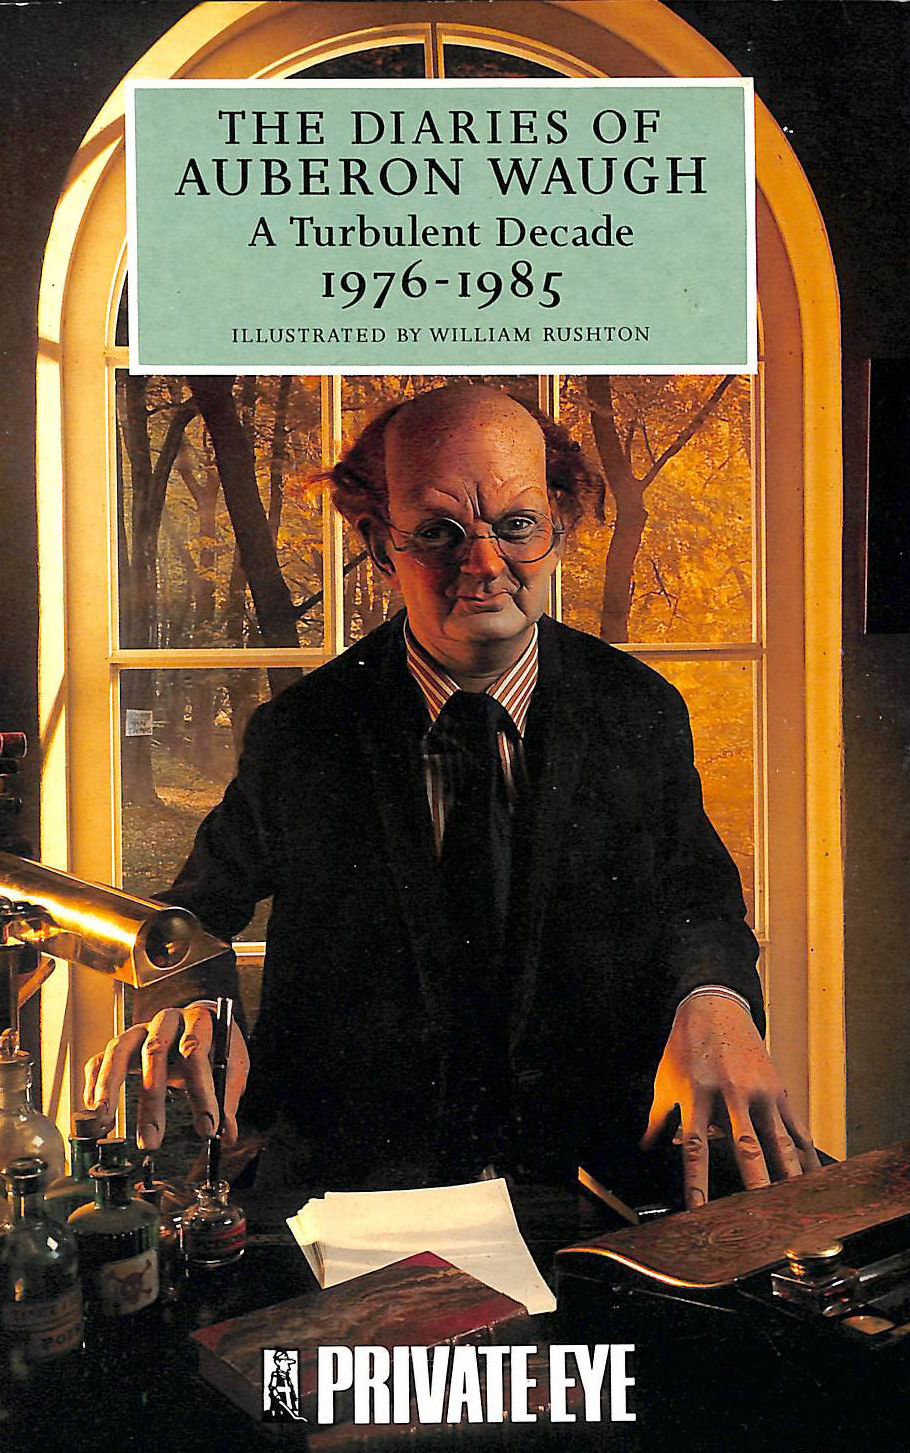 Image for The Diaries of Auberon Waugh: A Turbulent Decade 1976-1985